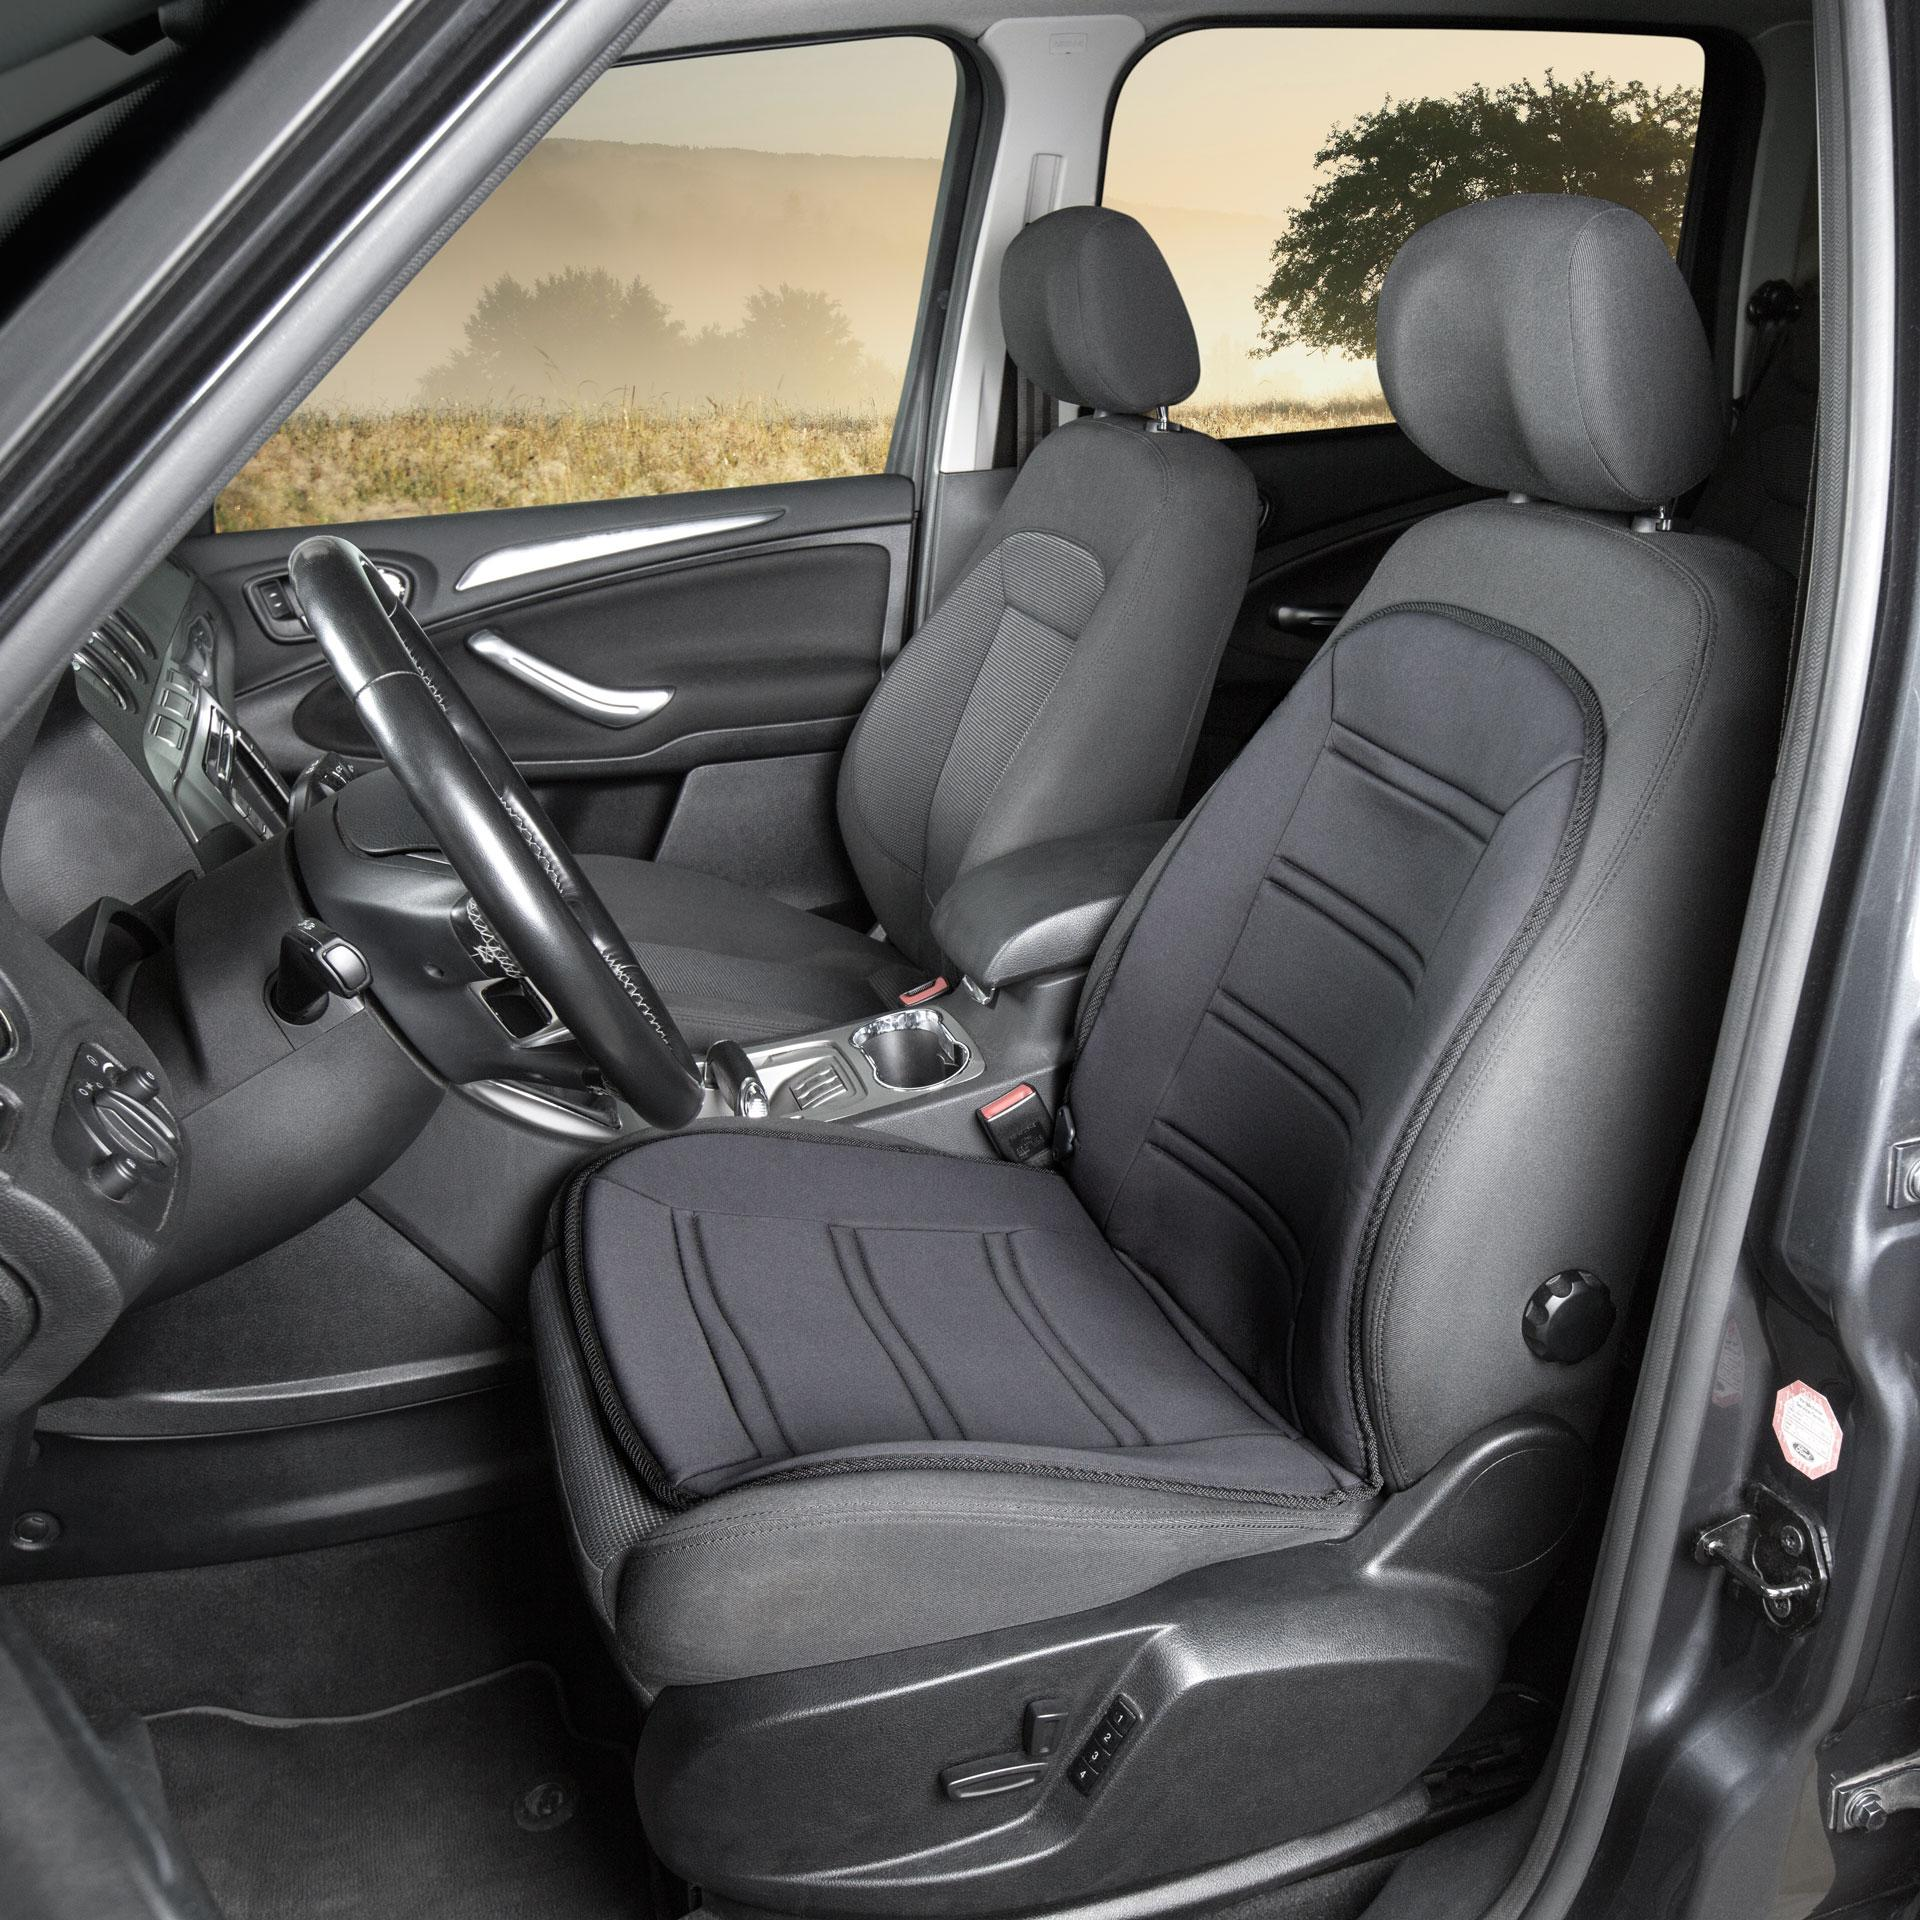 Heated Seat Cover WALSER 16773 rating